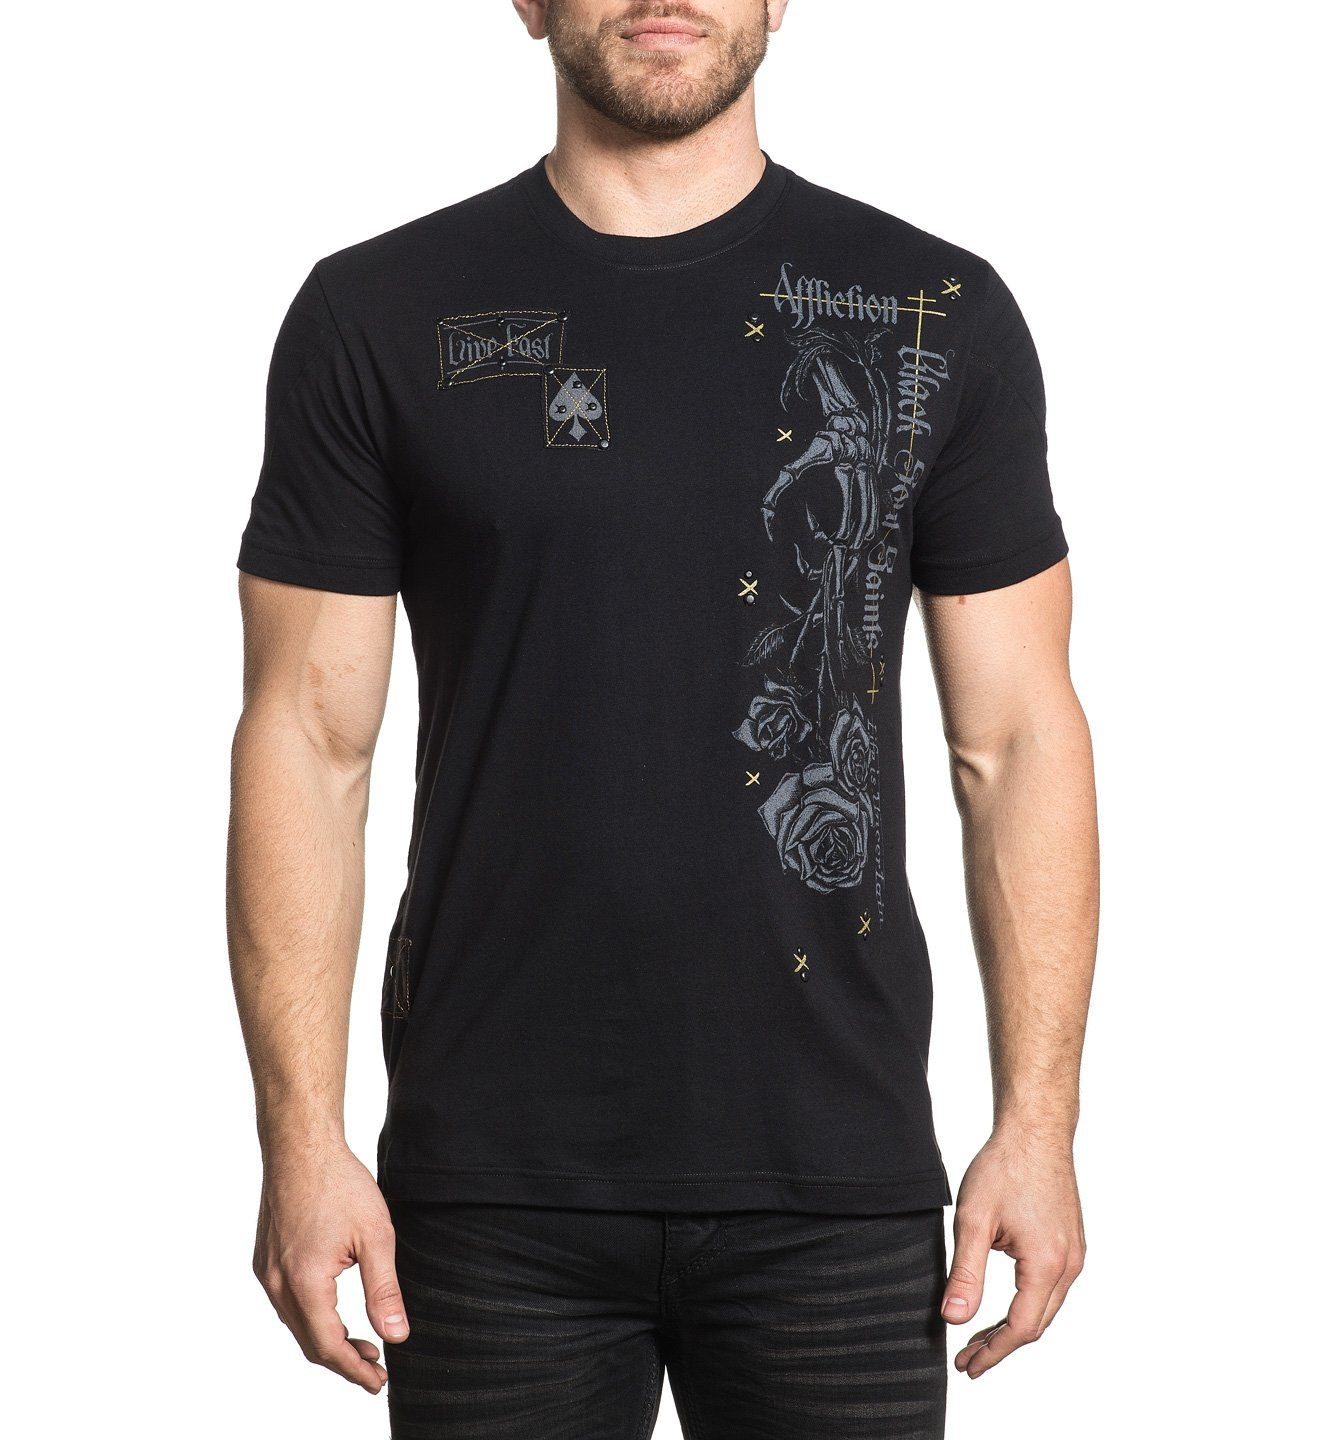 Mens Short Sleeve Tees - Tornado Souls